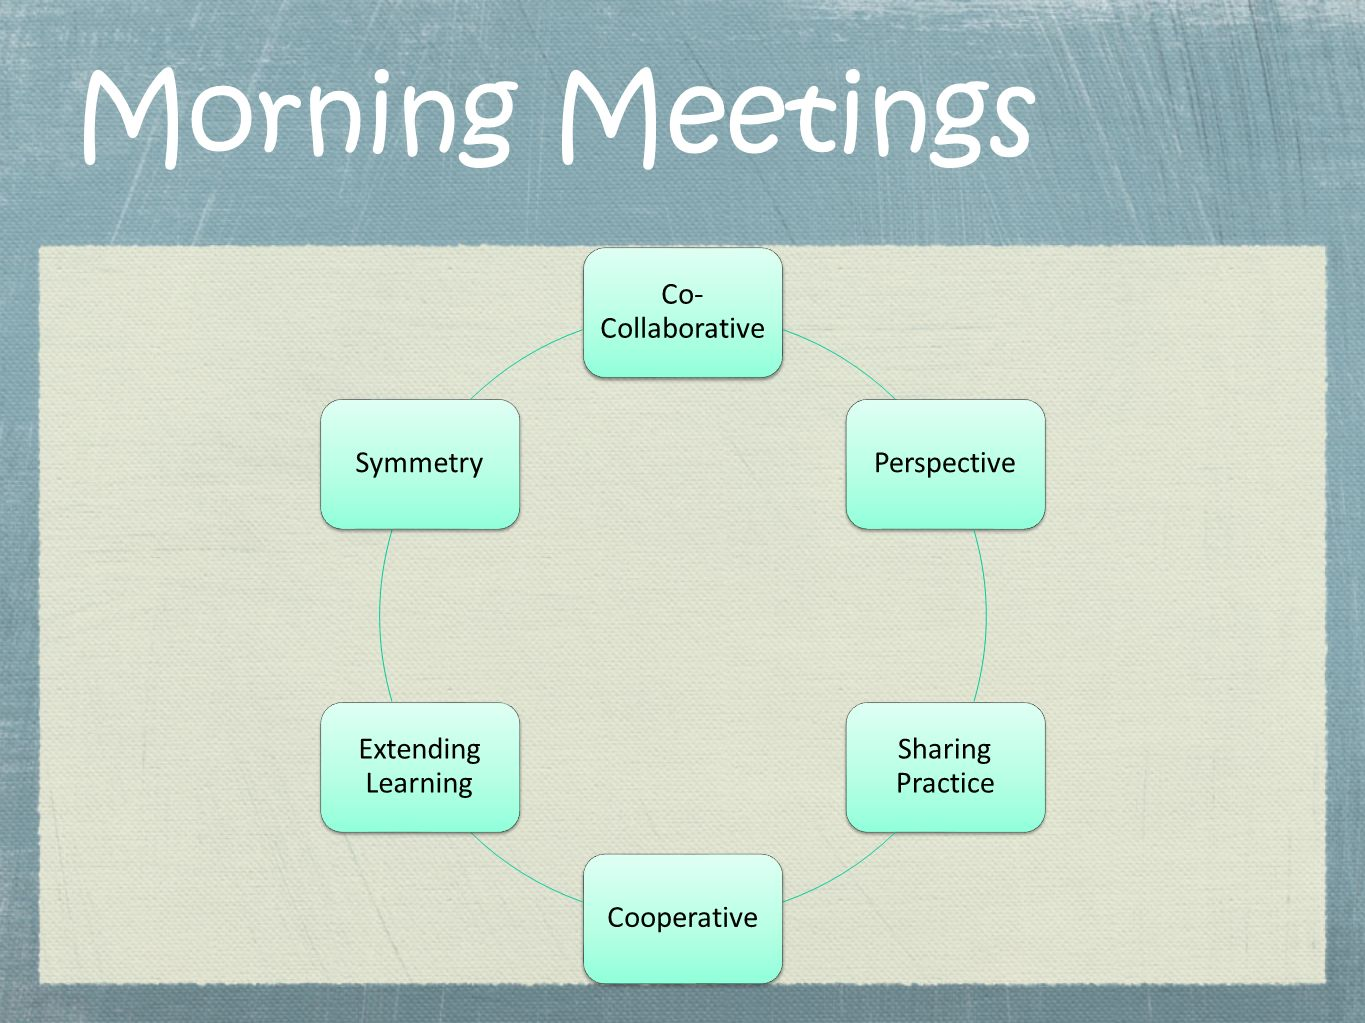 Morning Meetings Co- Collaborative Perspective Sharing Practice Cooperative Extending Learning Symmetry